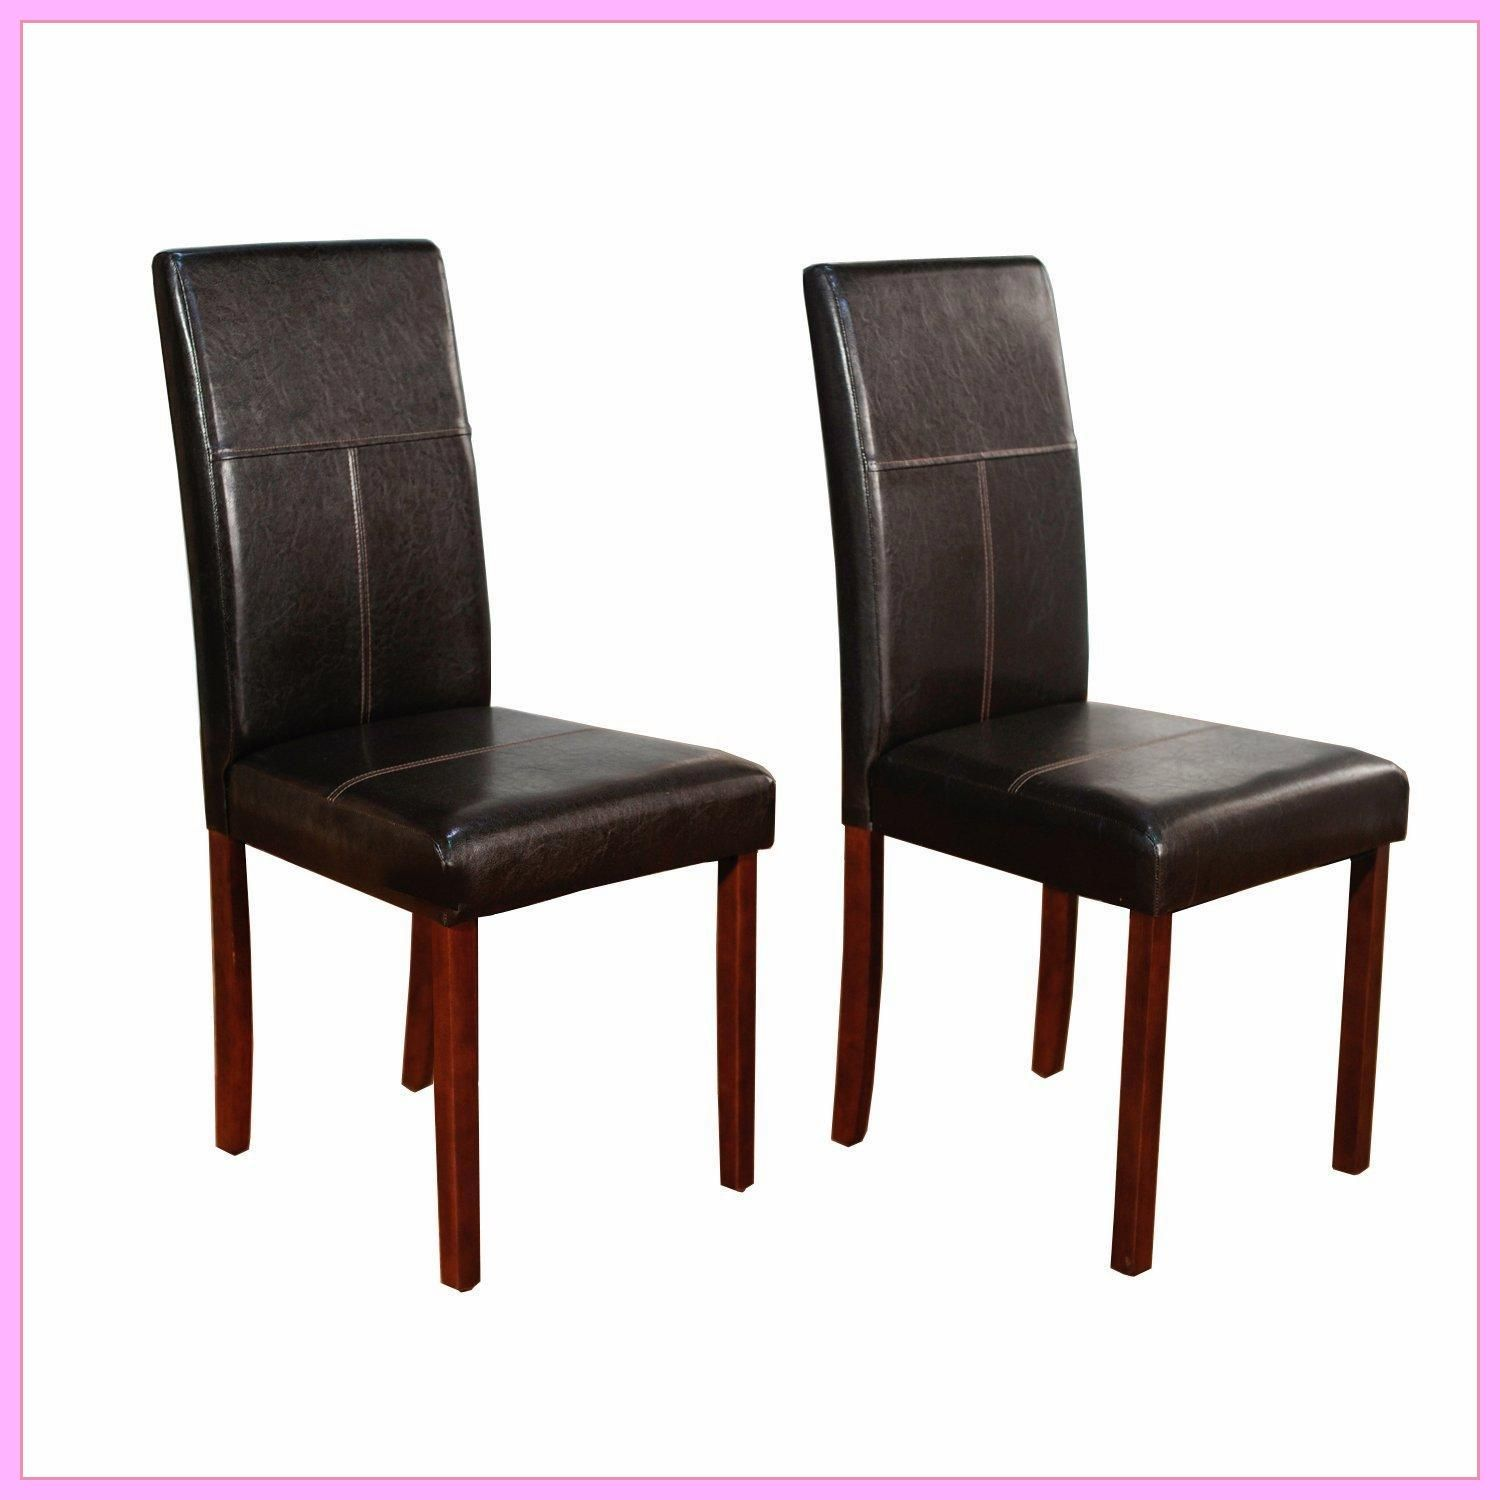 82 Reference Of High Chair Cover Target In 2020 Parsons Dining Chairs Leather Single Chair Highchair Cover